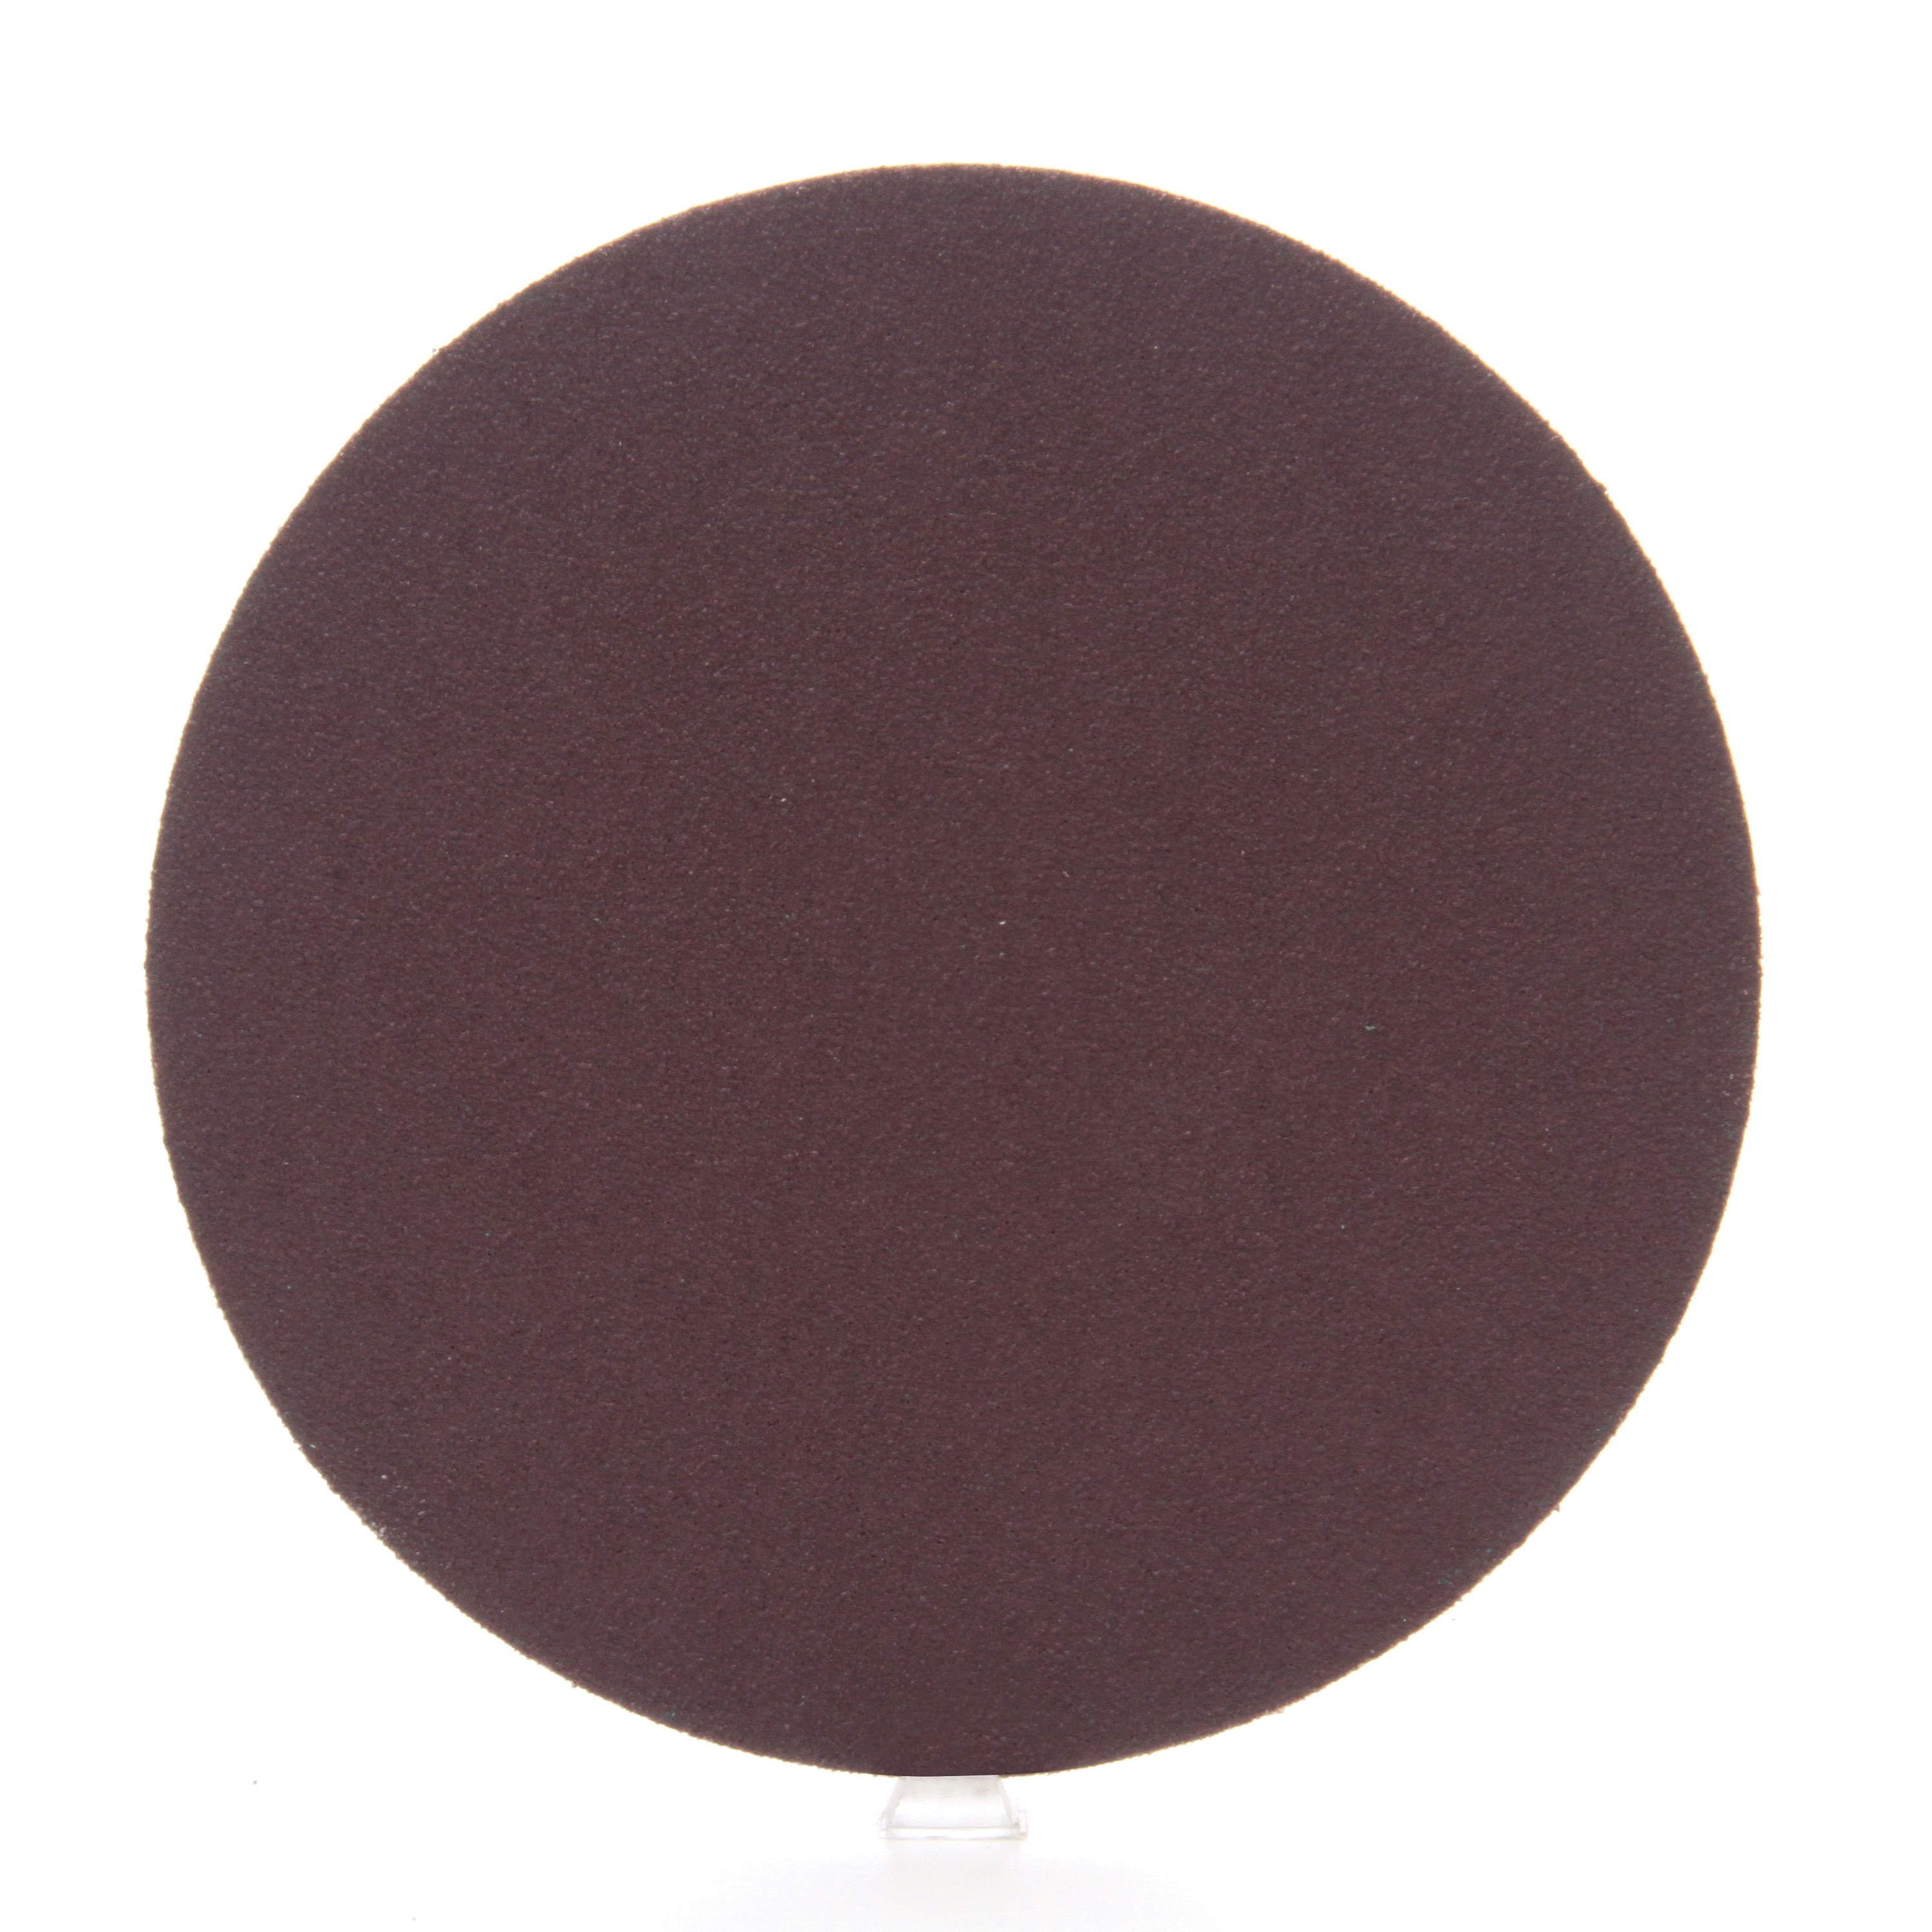 3M™ 051144-20877 348D Heavy Duty PSA Mounted Point, 6 in Dia Disc, 80 Grit, Medium Grade, Aluminum Oxide Abrasive, Cloth Backing